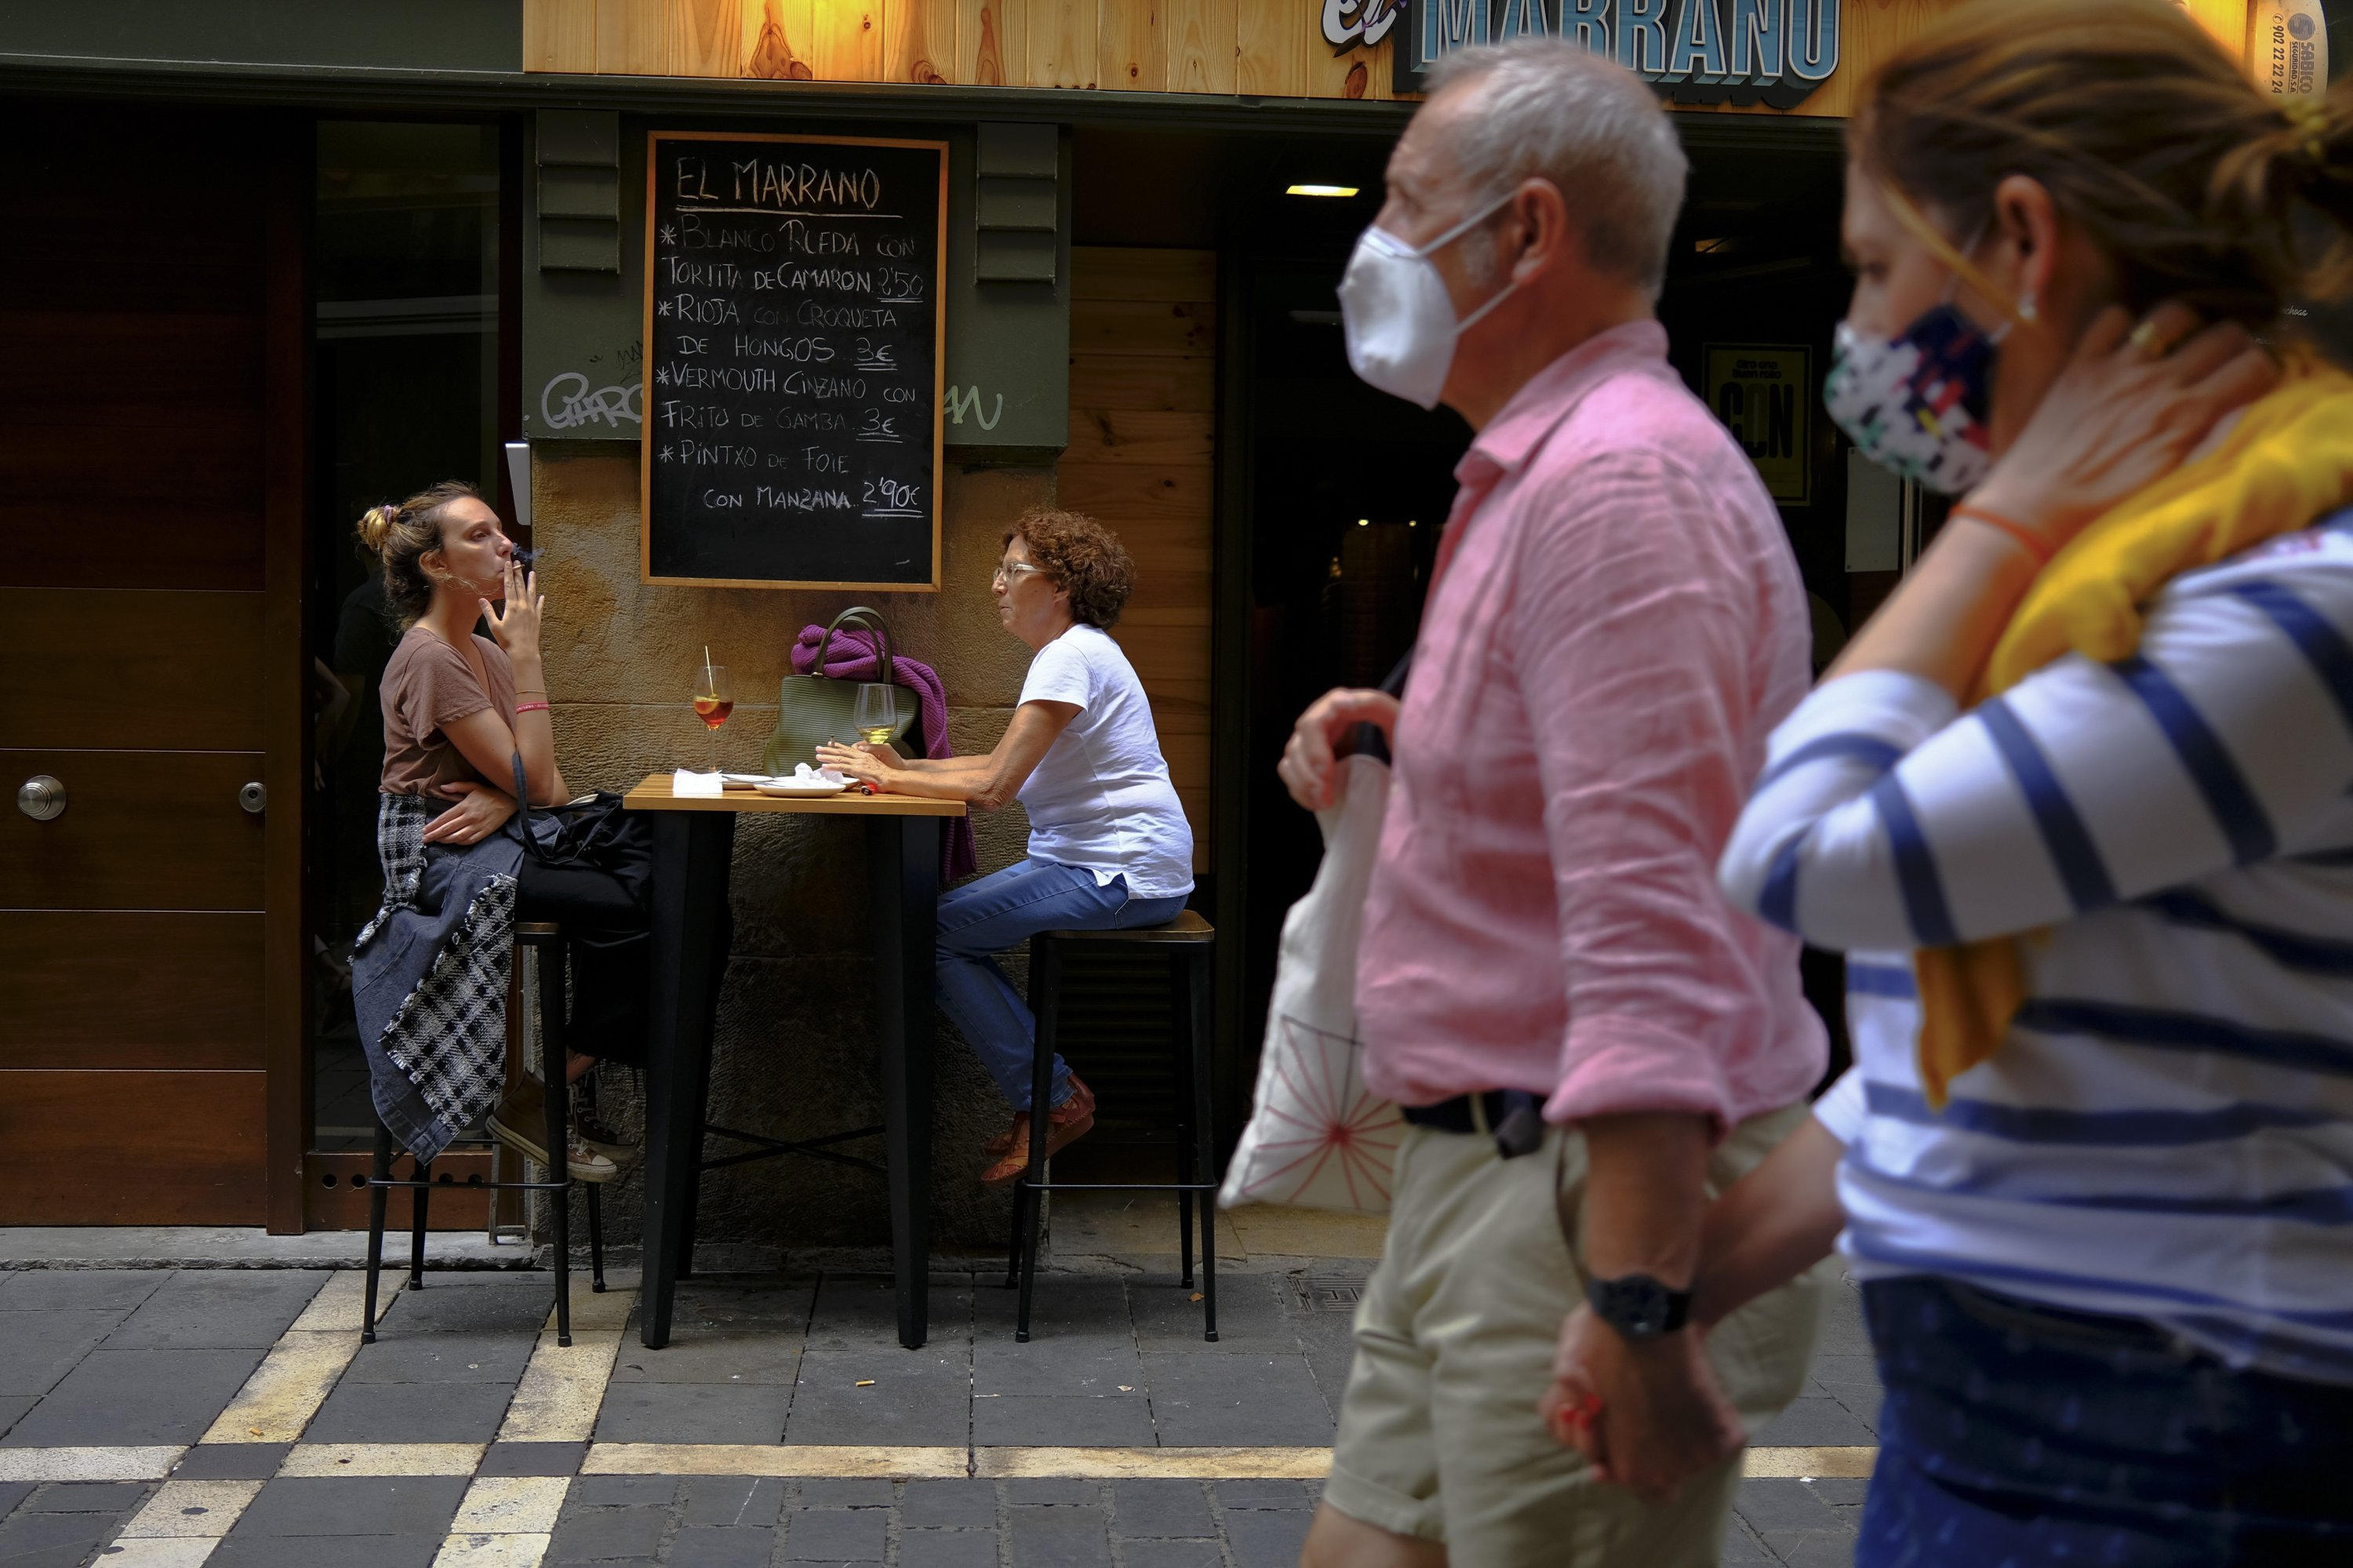 Two women smoke cigarettes in a bar while pedestrians wearing face masks walk past, in Pamplona, northern Spain, Aug. 17, 2020. (AP Photo)